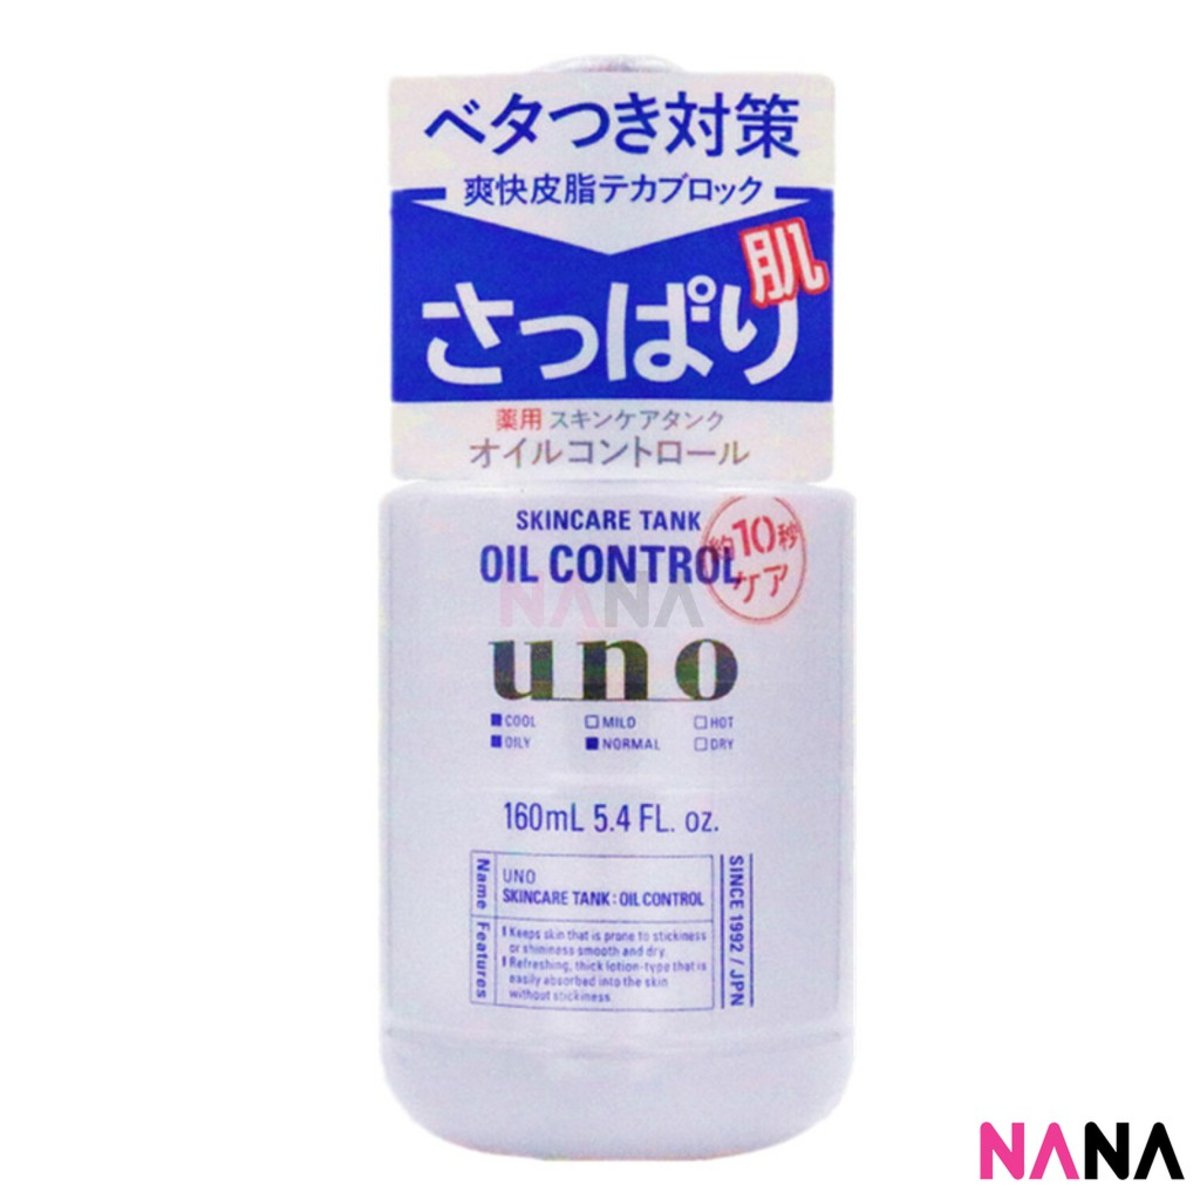 Uno Skincare Tank Moisturizing Lotion for Men - Oil Control 160ml